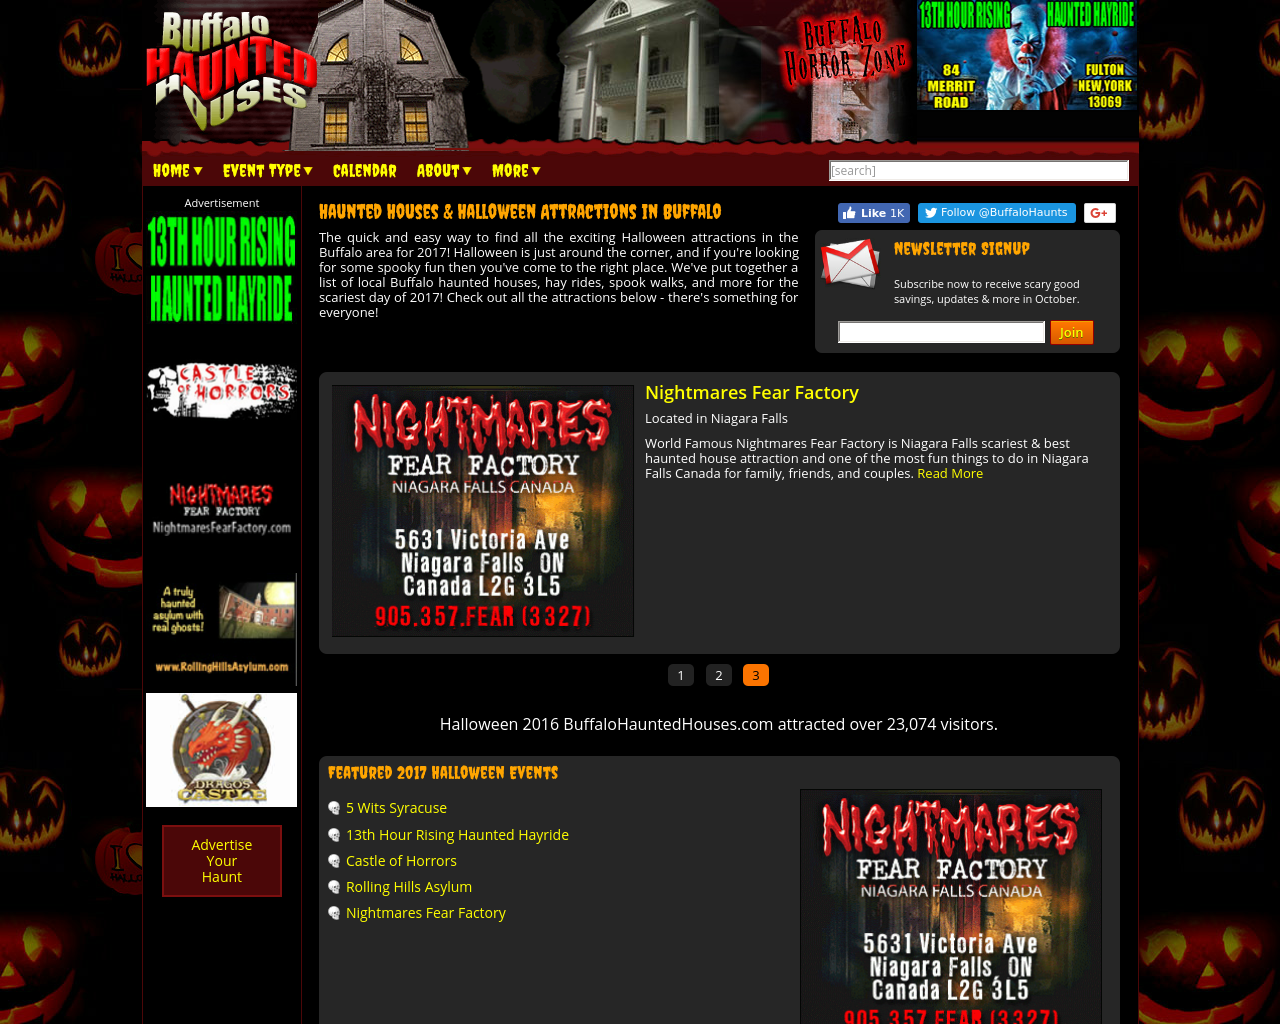 Buffalo-Haunted-Houses-Advertising-Reviews-Pricing